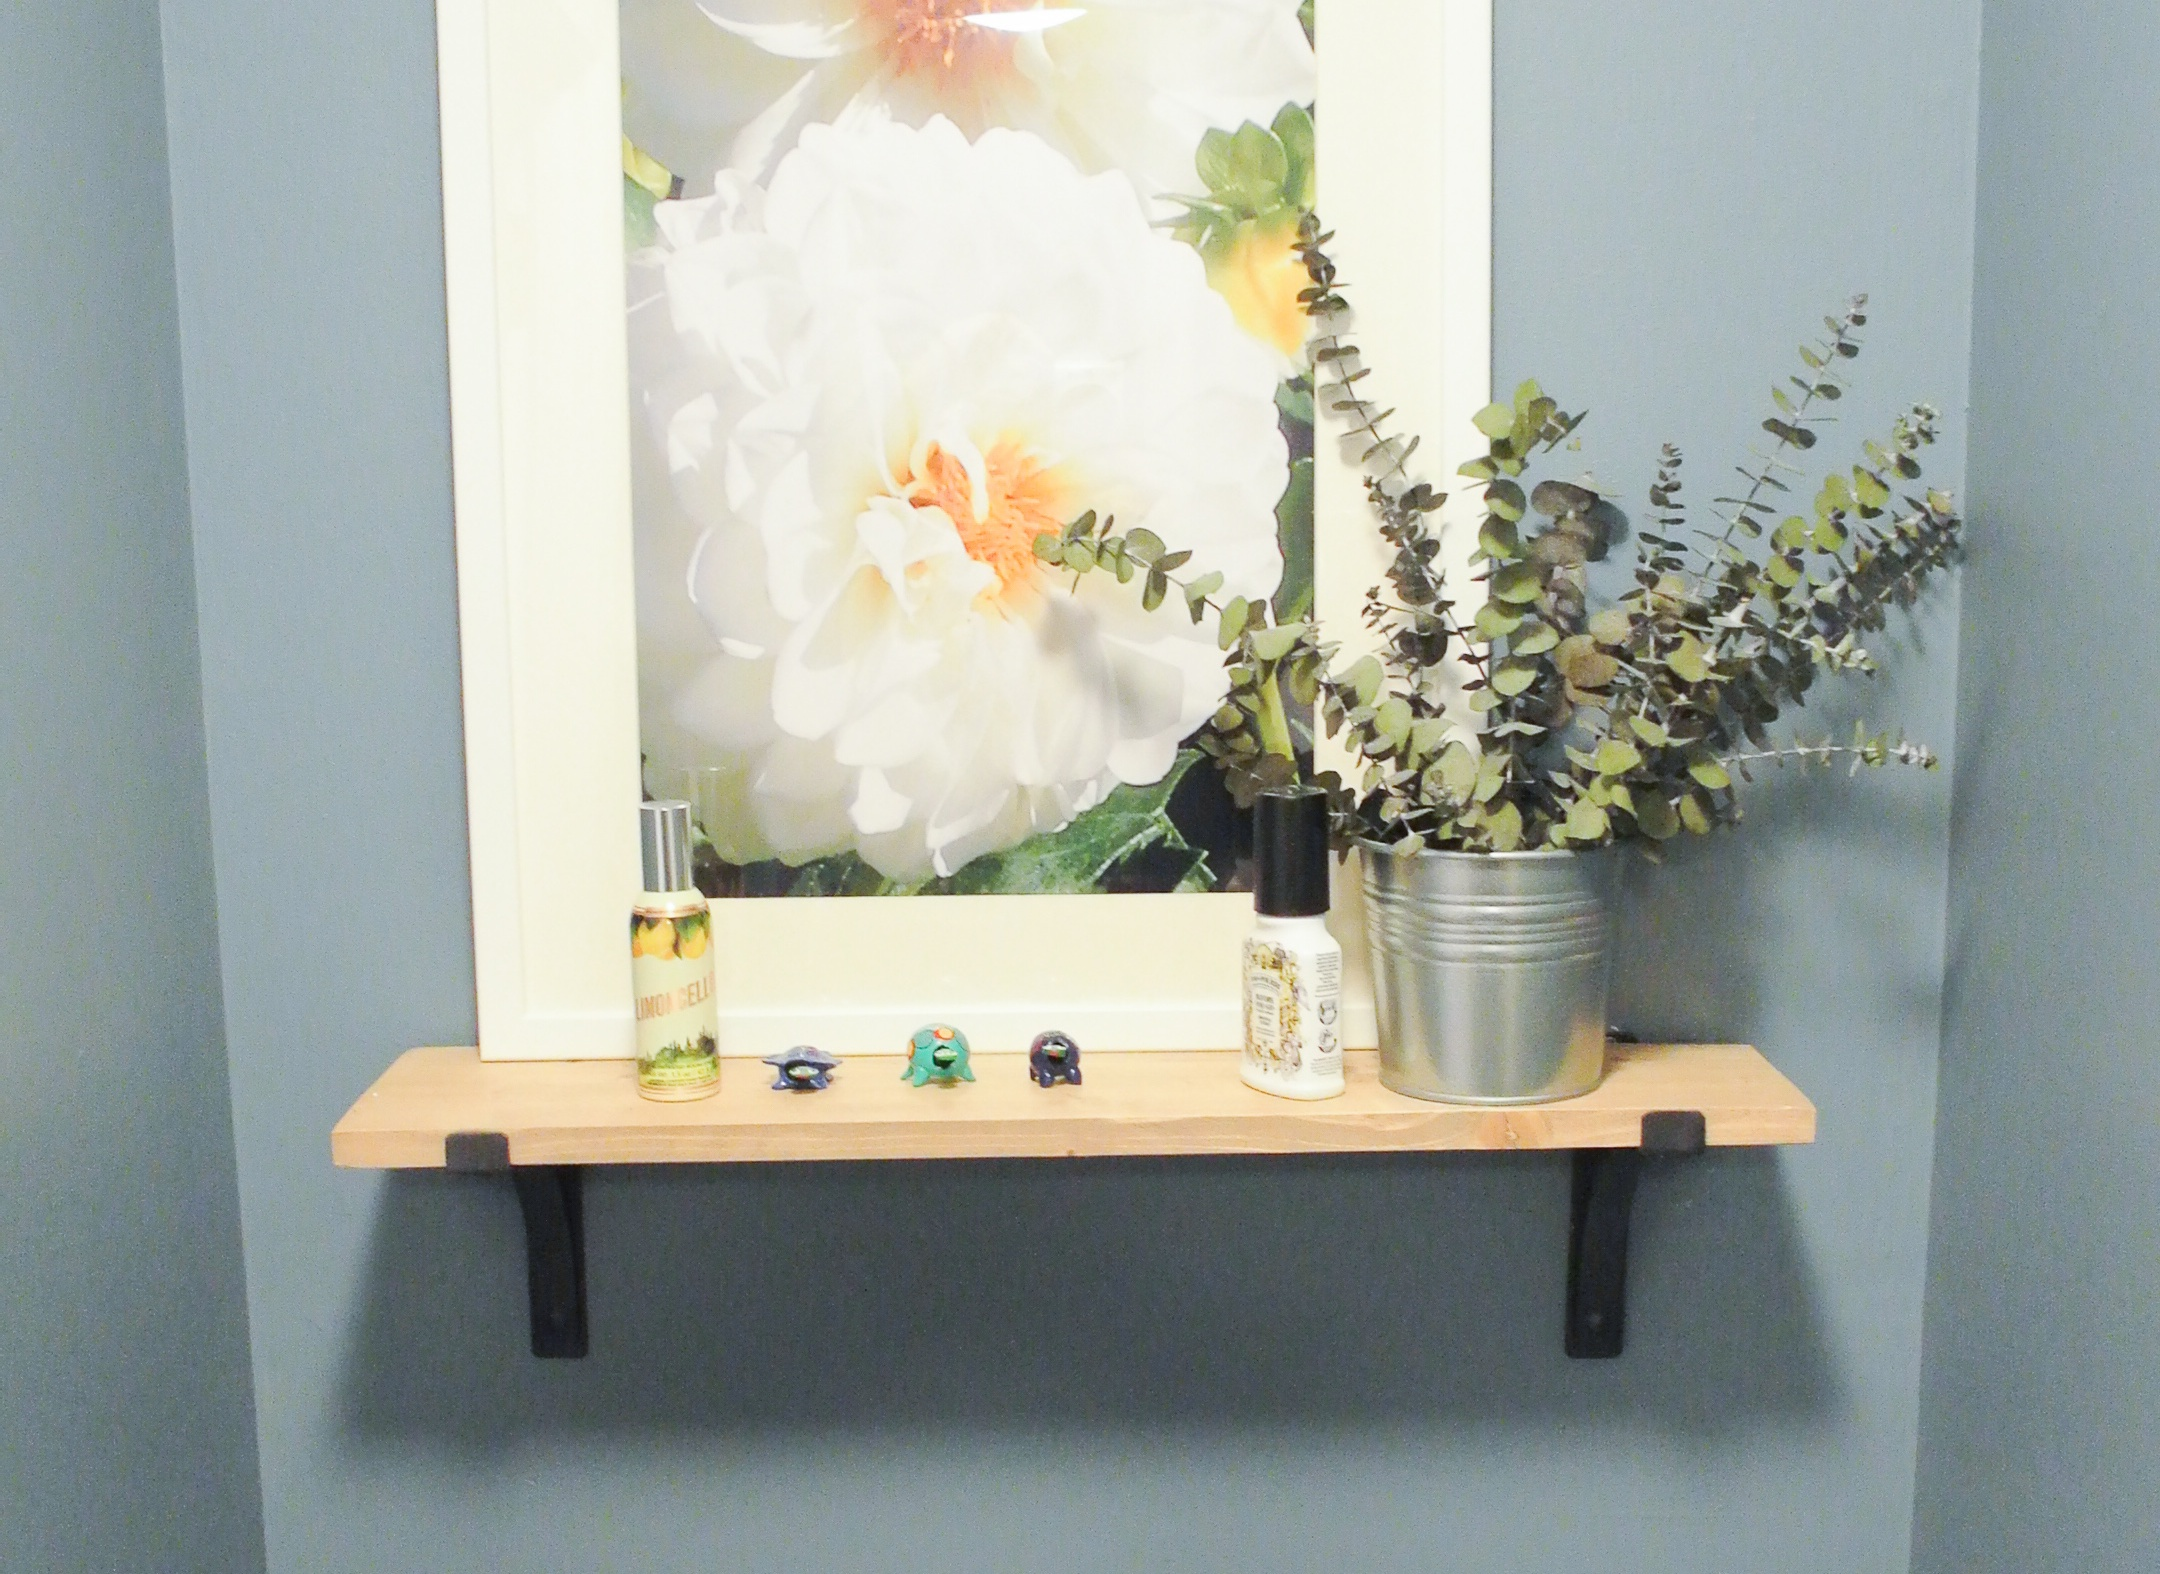 House Tour // Powder Room To Laundry